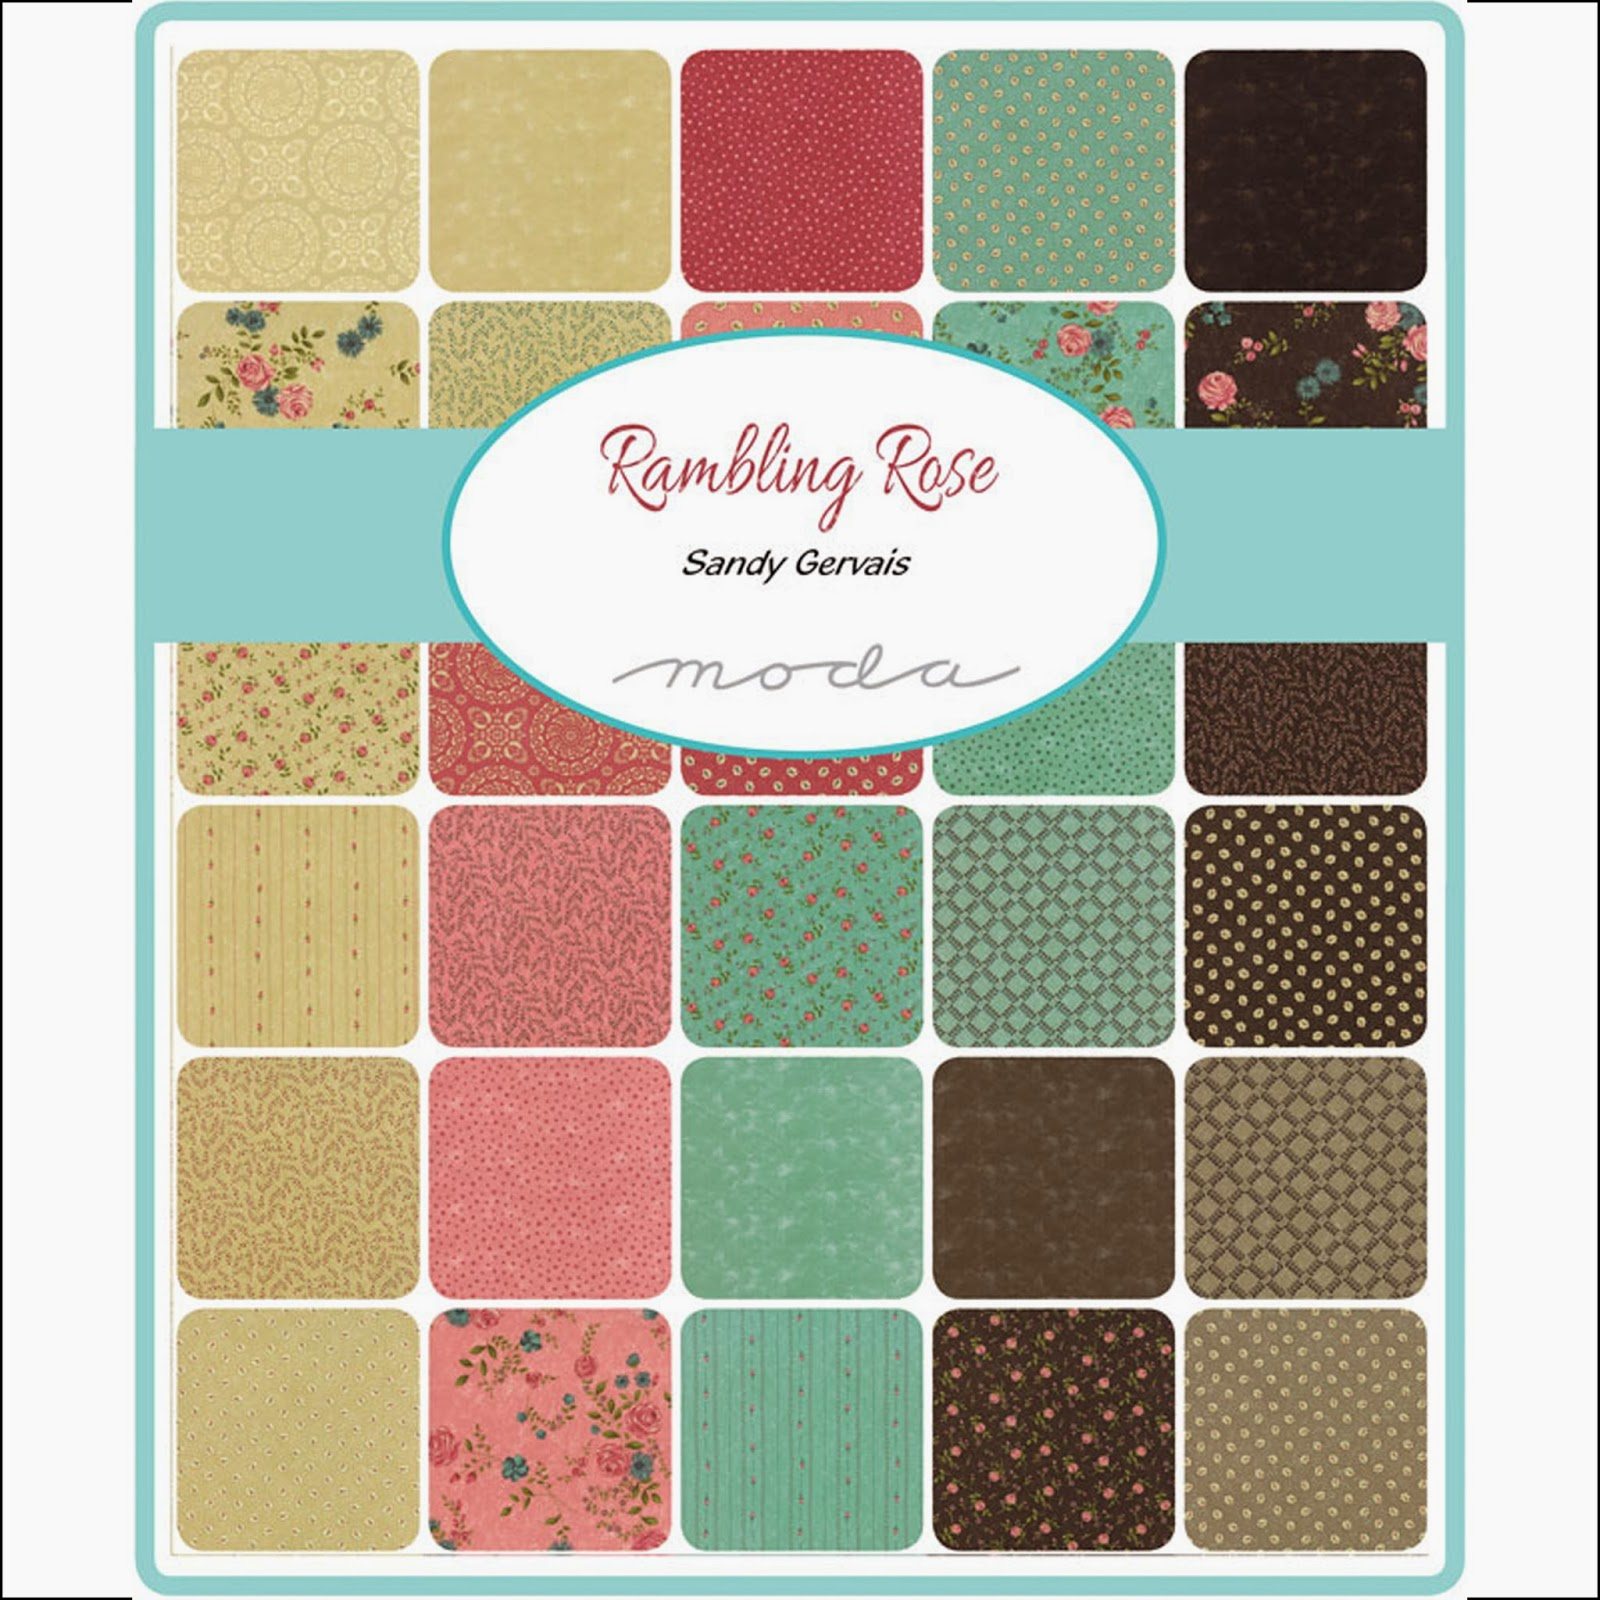 Moda RAMBLING ROSE Quilt Fabric by Sandy Gervais for Moda Fabrics